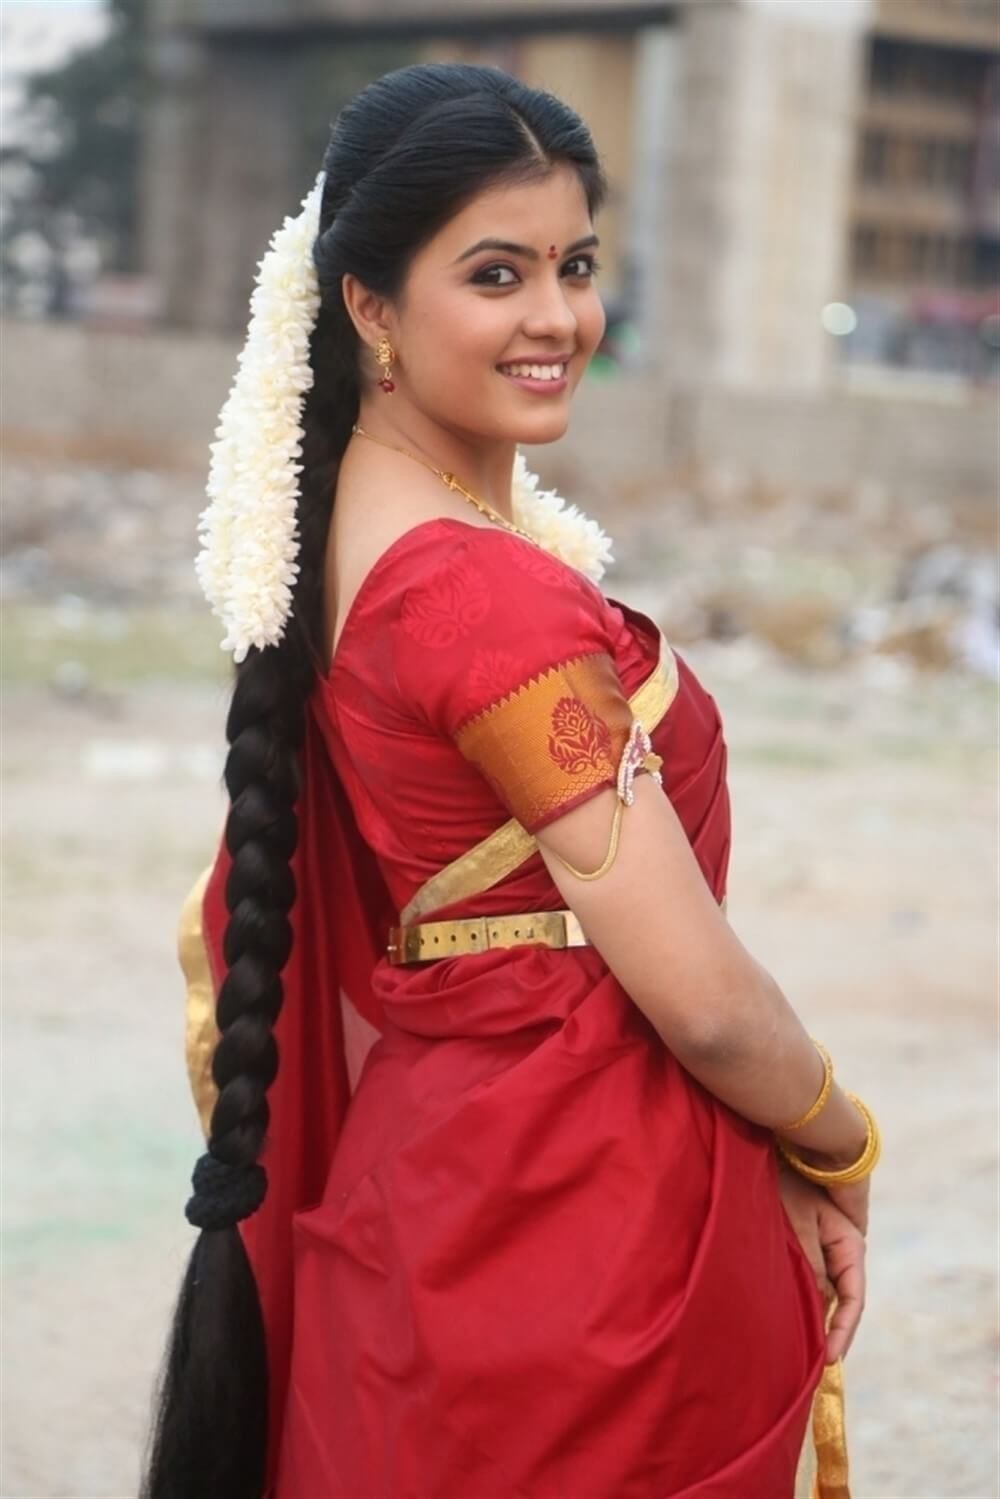 south indian woman with long braid and fresh jasmines in her